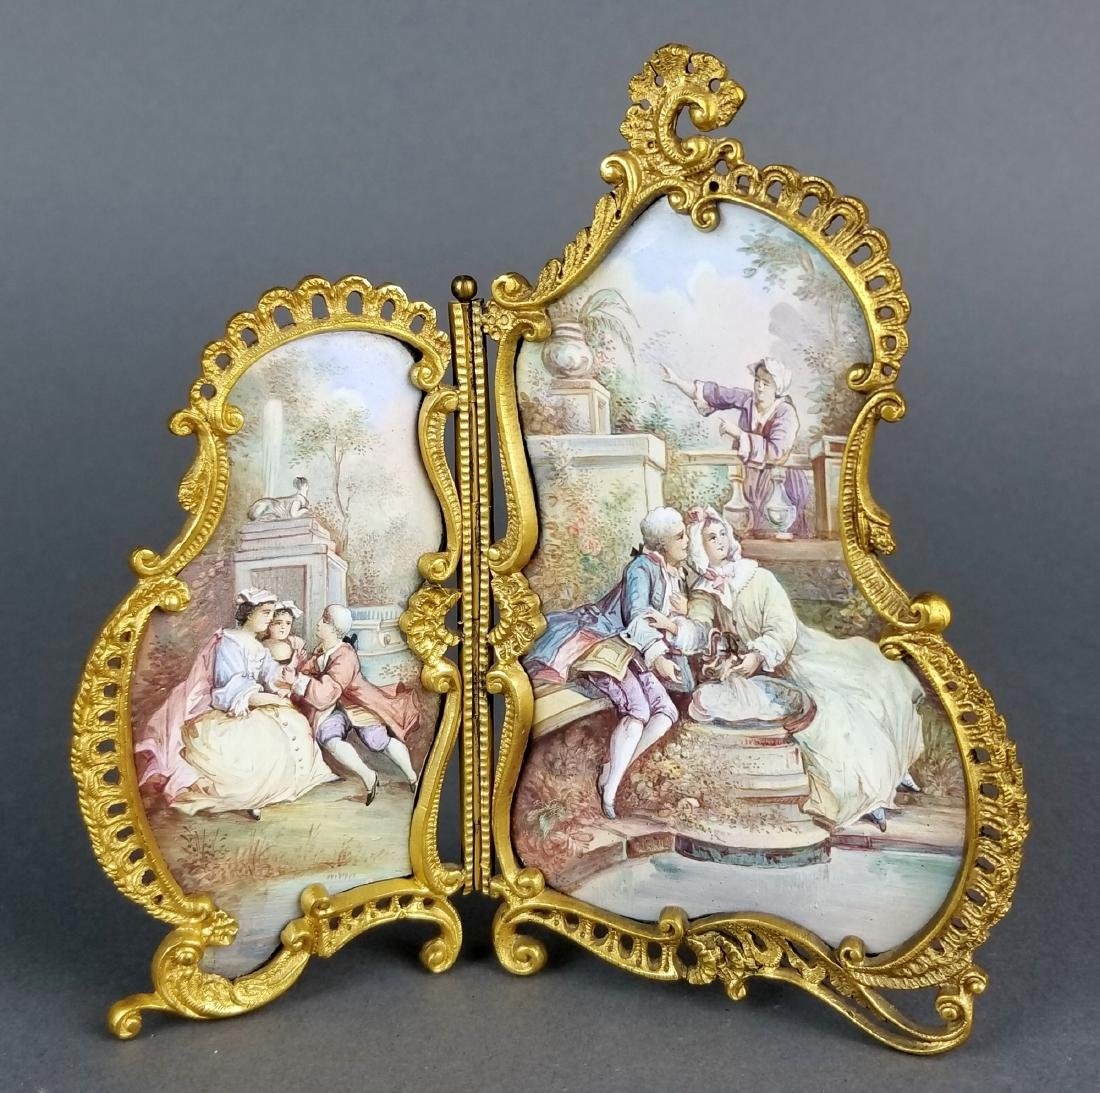 19th C. Austrian Viennese Enamel Folding Screen